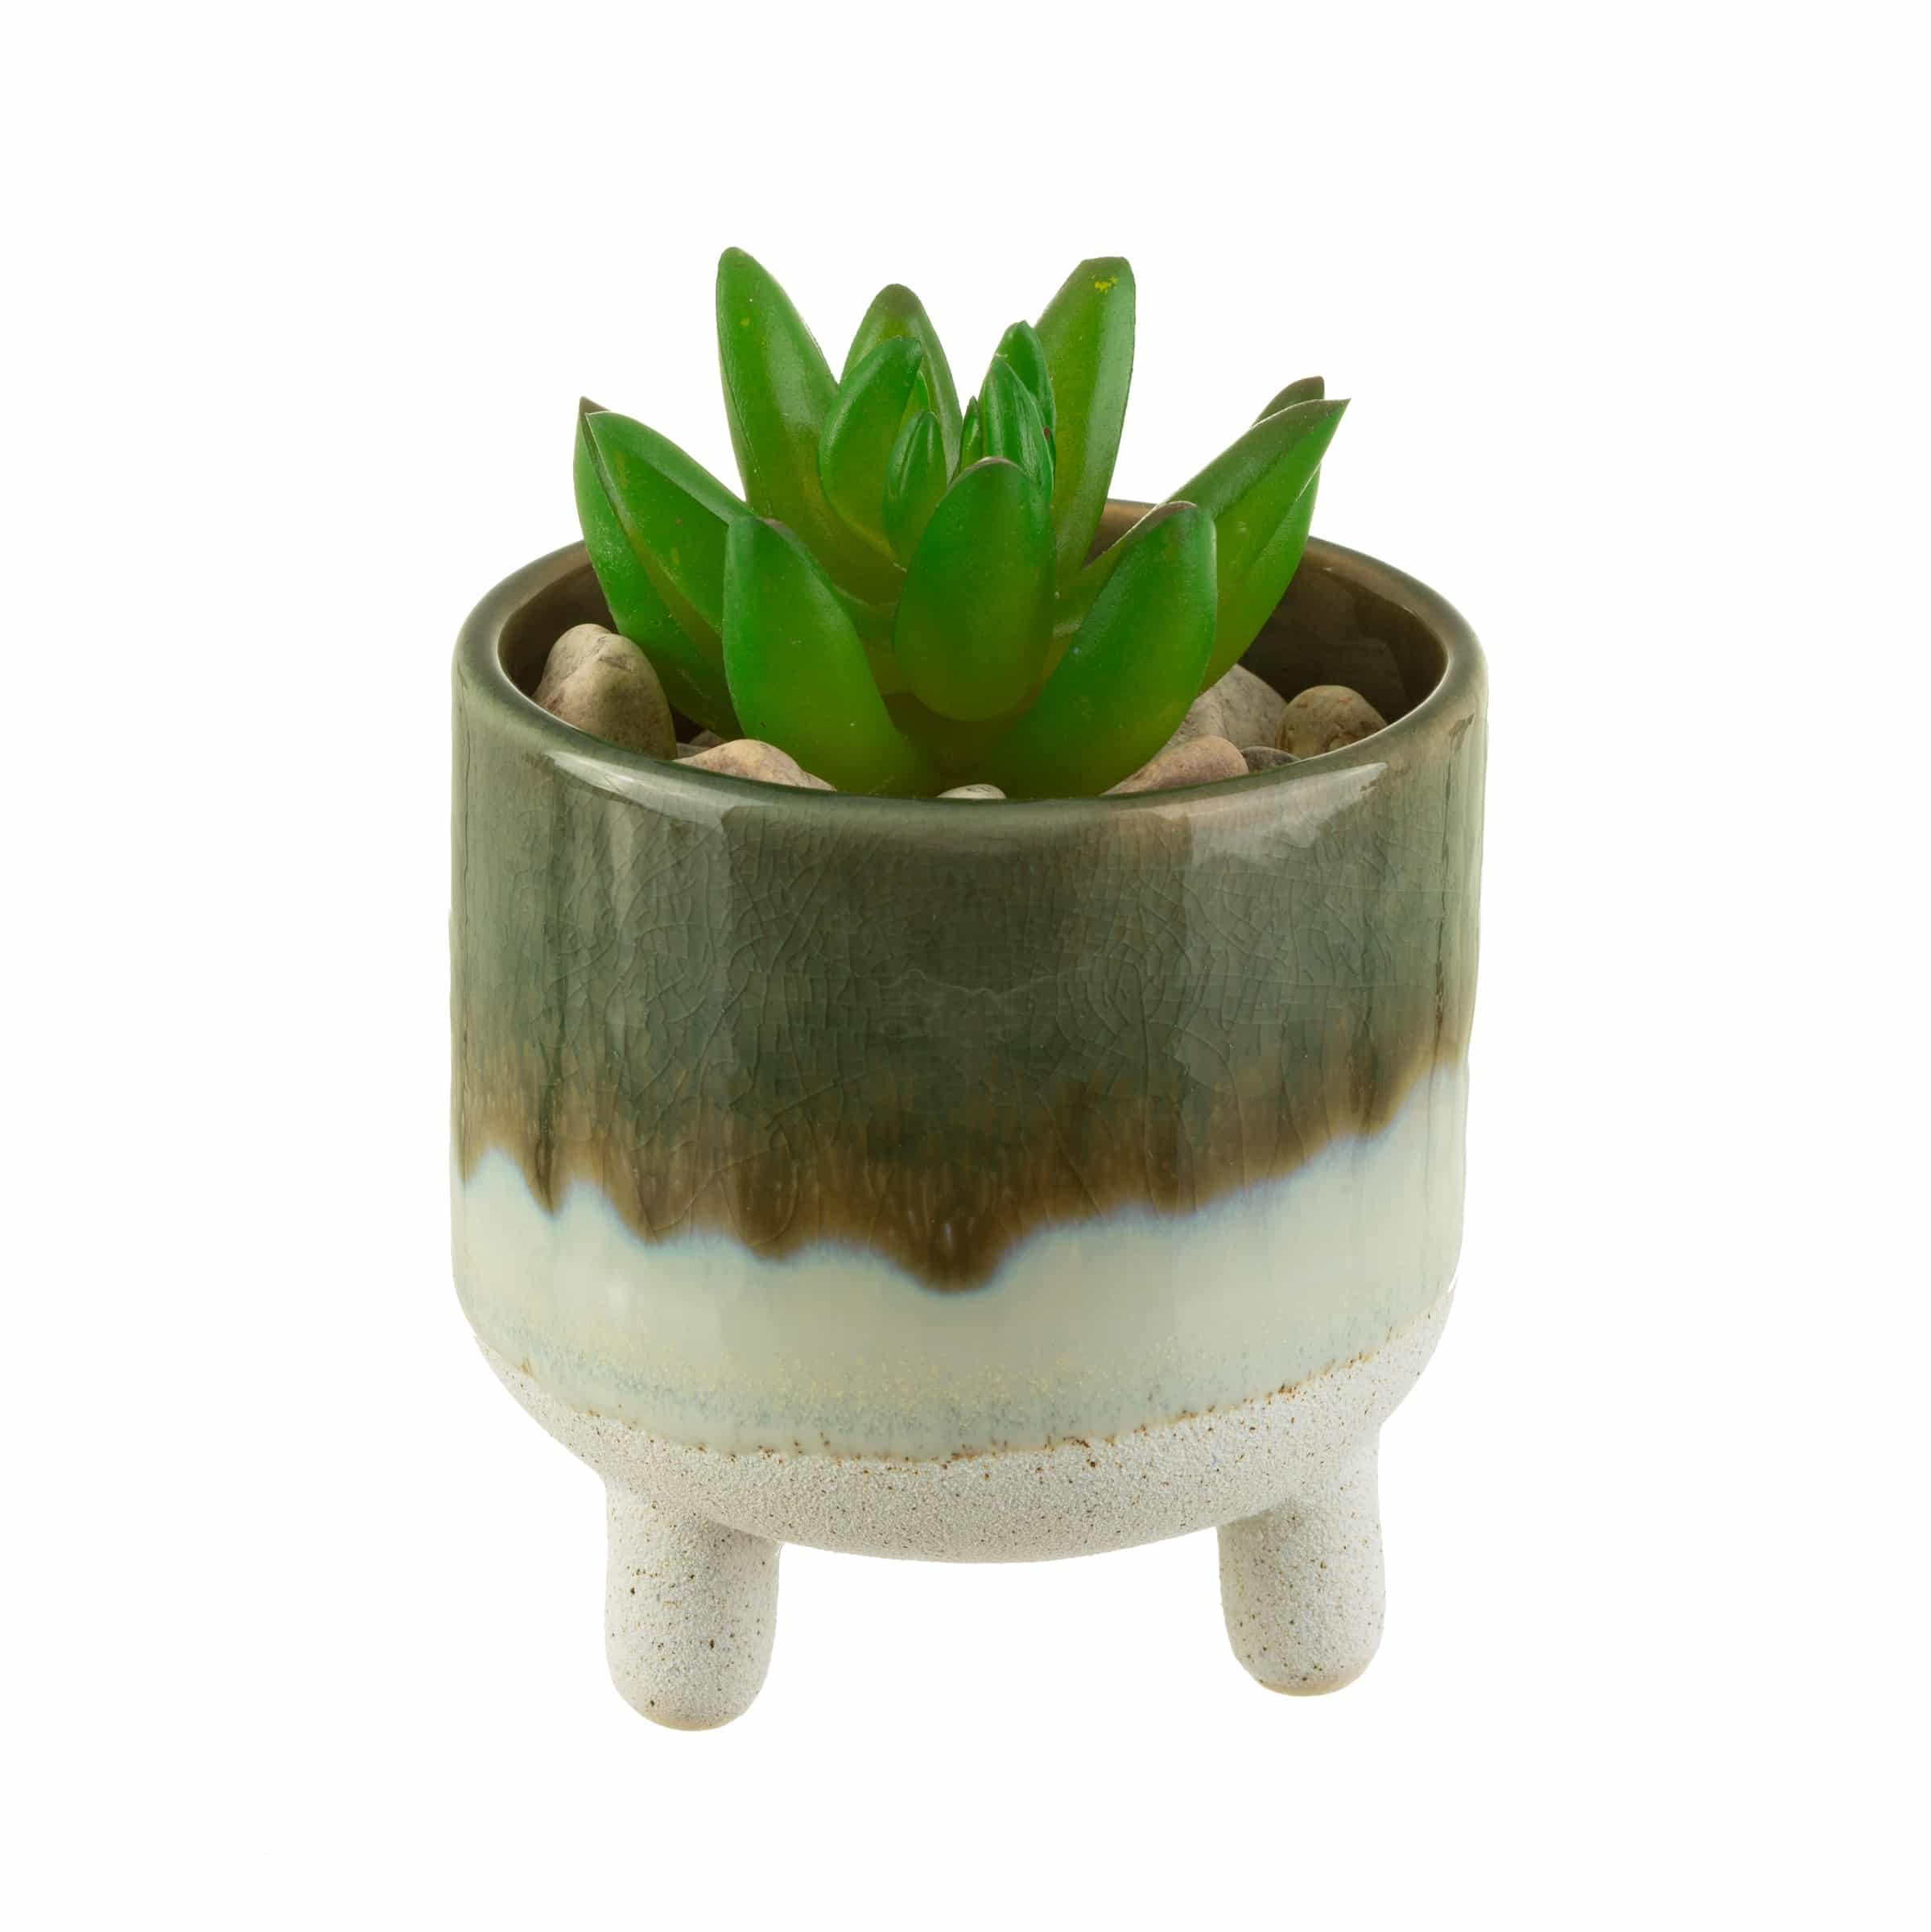 Bohemian green planter with plant